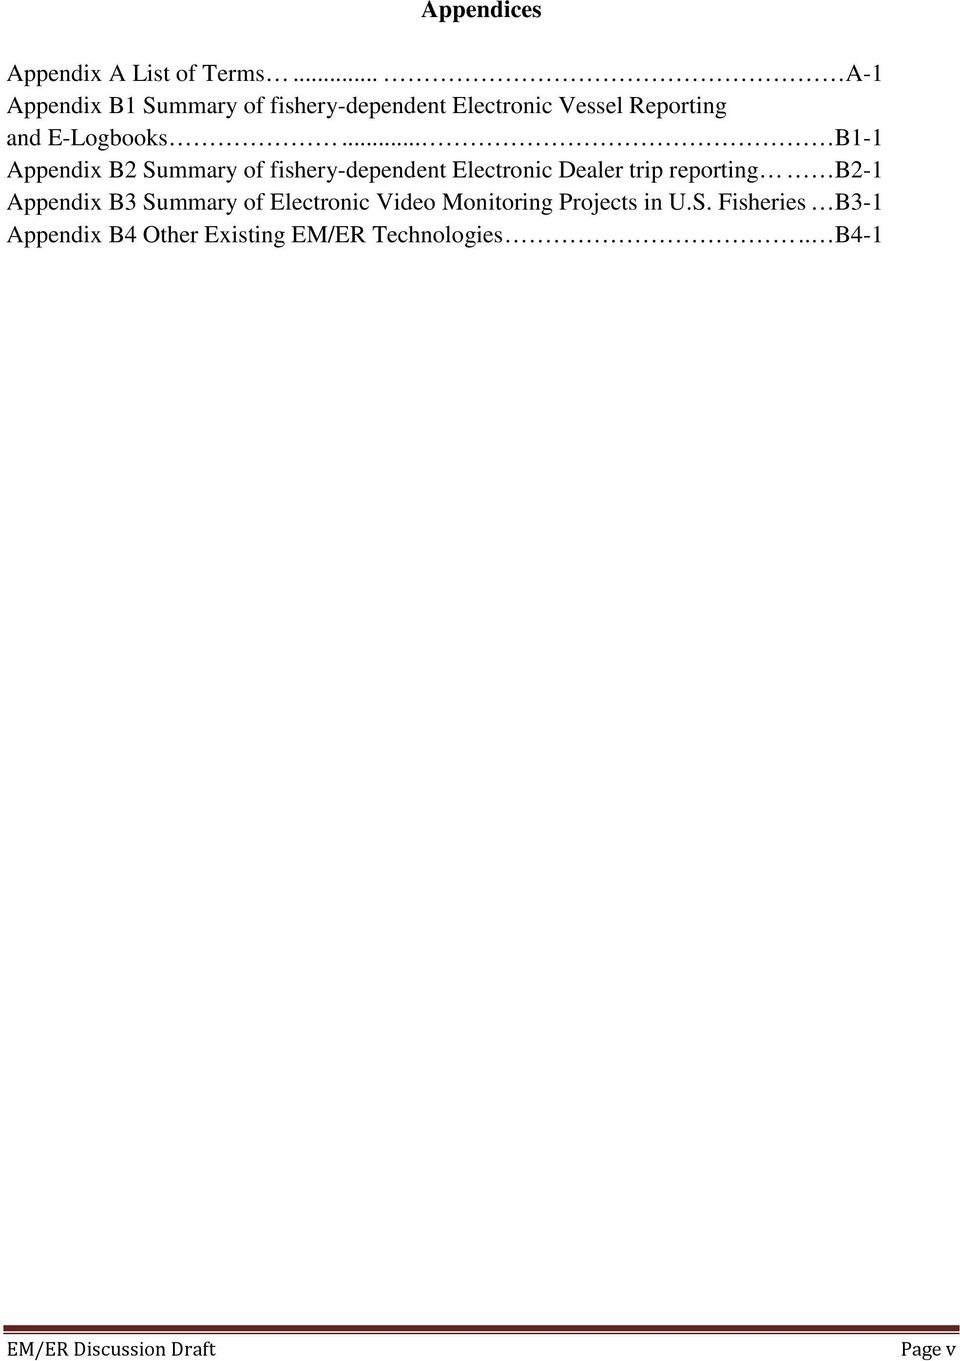 .. B1-1 Appendix B2 Summary of fishery-dependent Electronic Dealer trip reporting B2-1